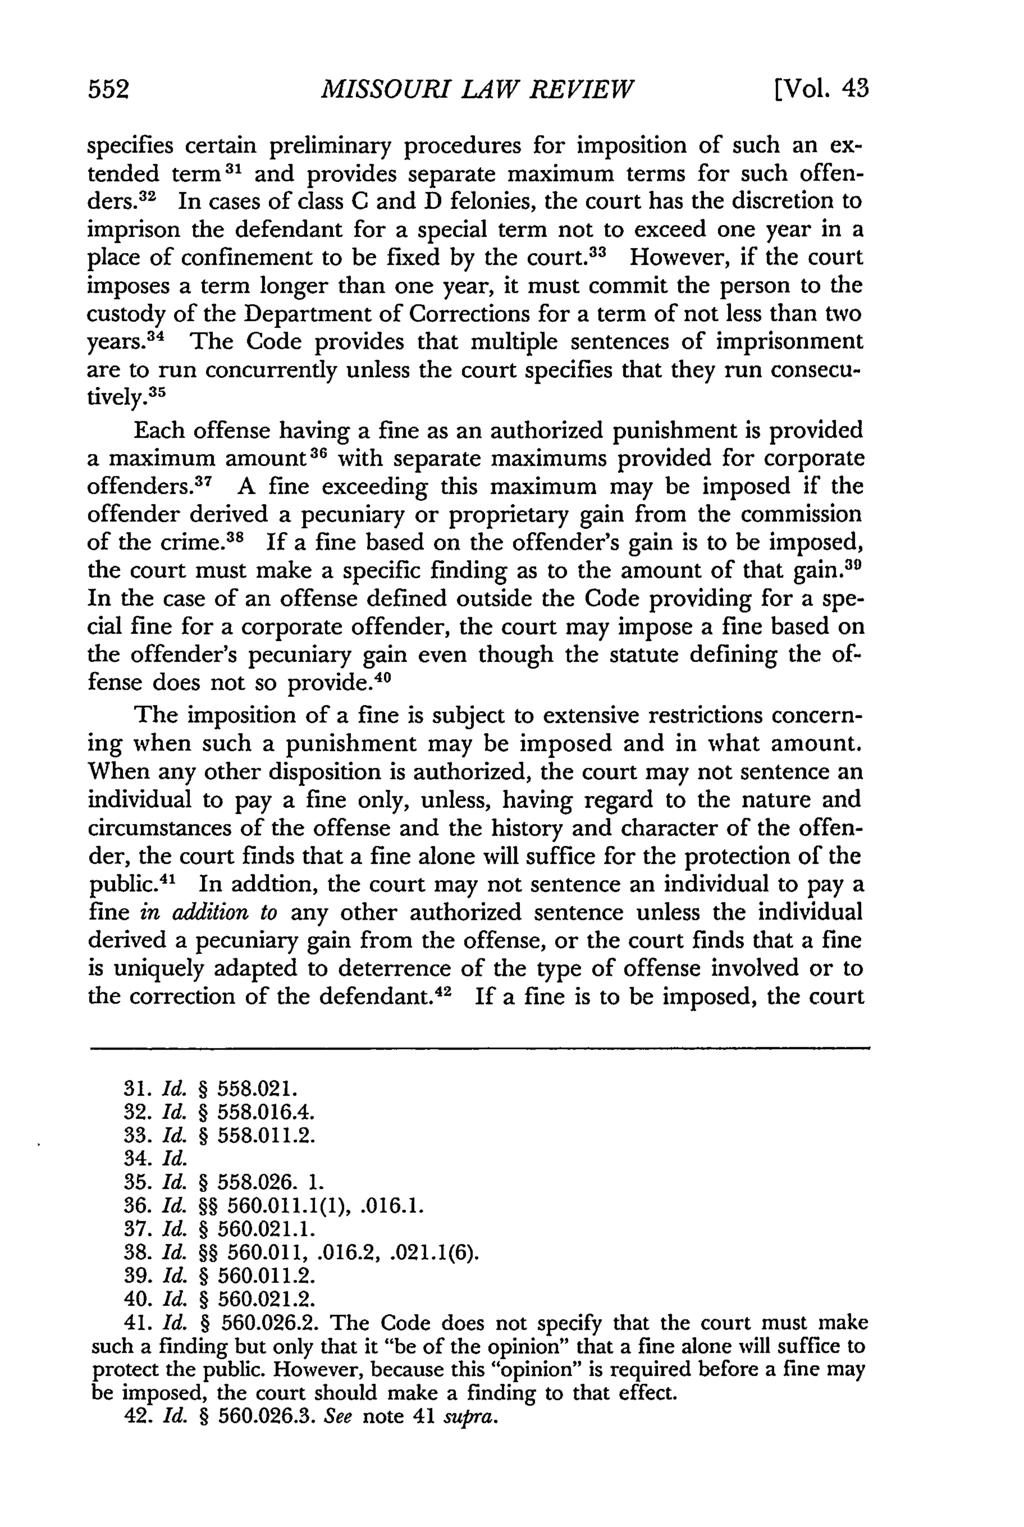 552 Missouri Law Review, Vol. 43, Iss. 3 [1978], Art. 6 MISSOURI LAW REVIEW [Vol.